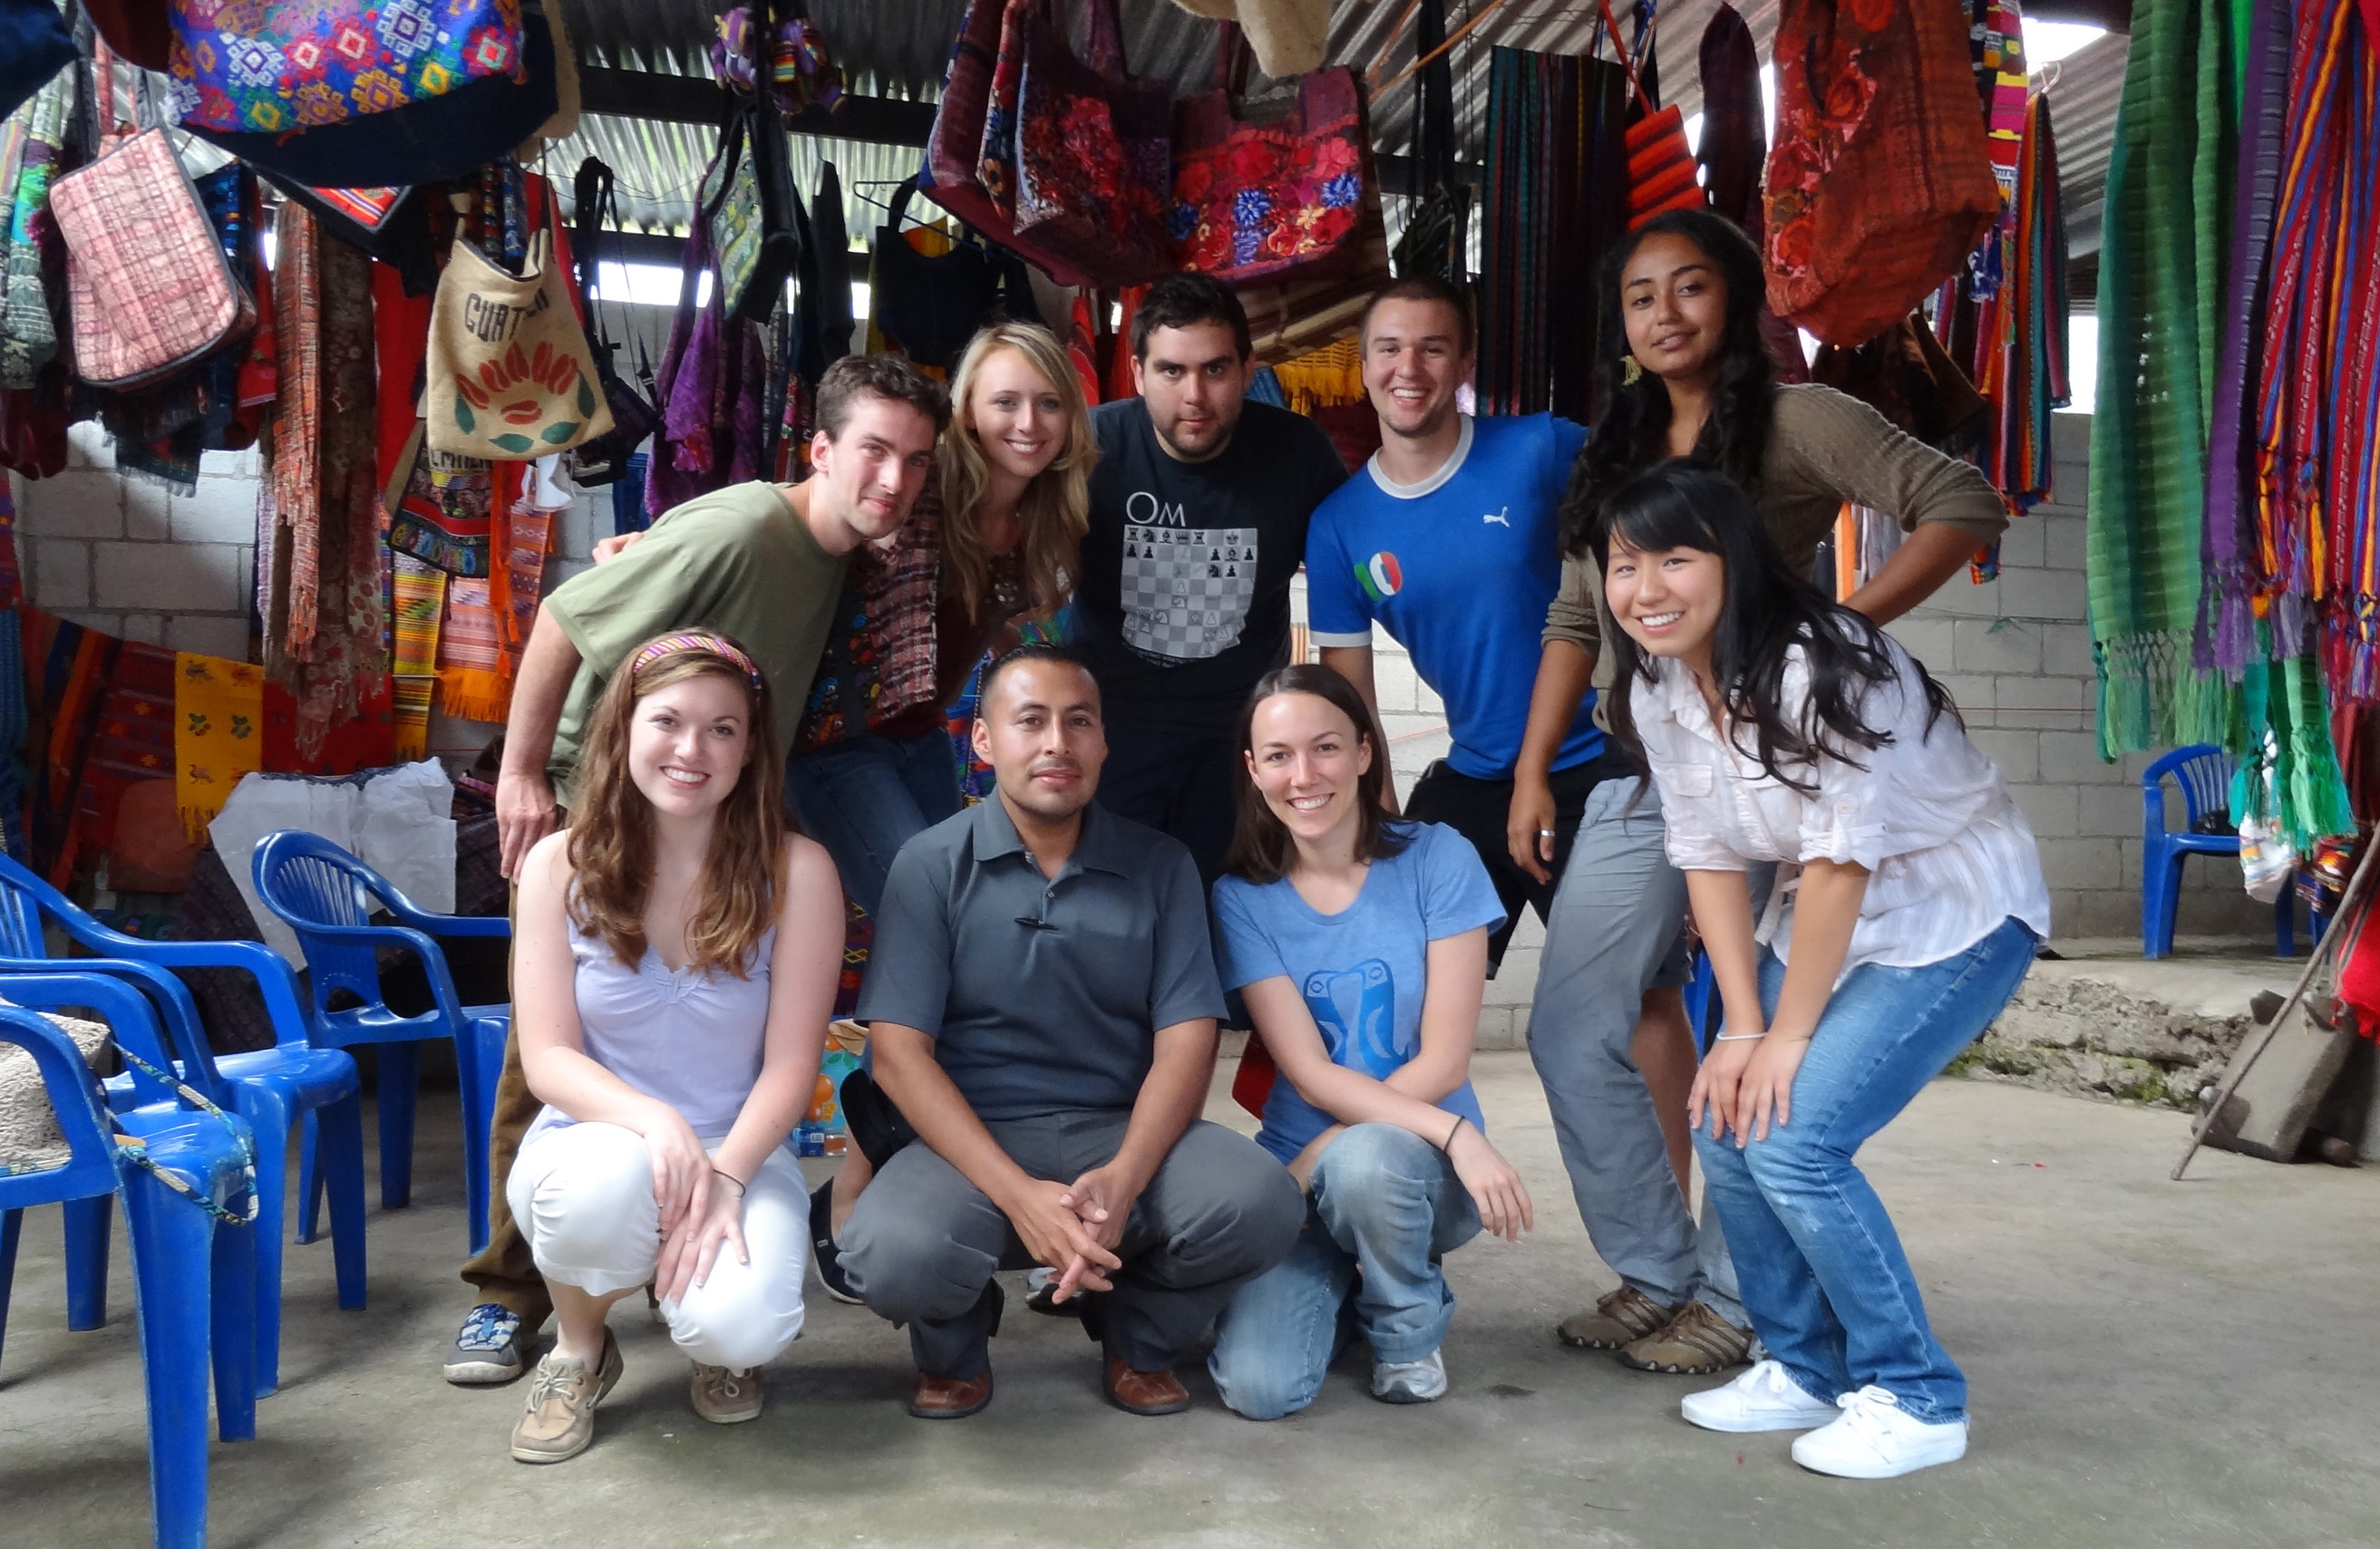 Prof. Urrieta and the Summer 2011 Study Abroad students